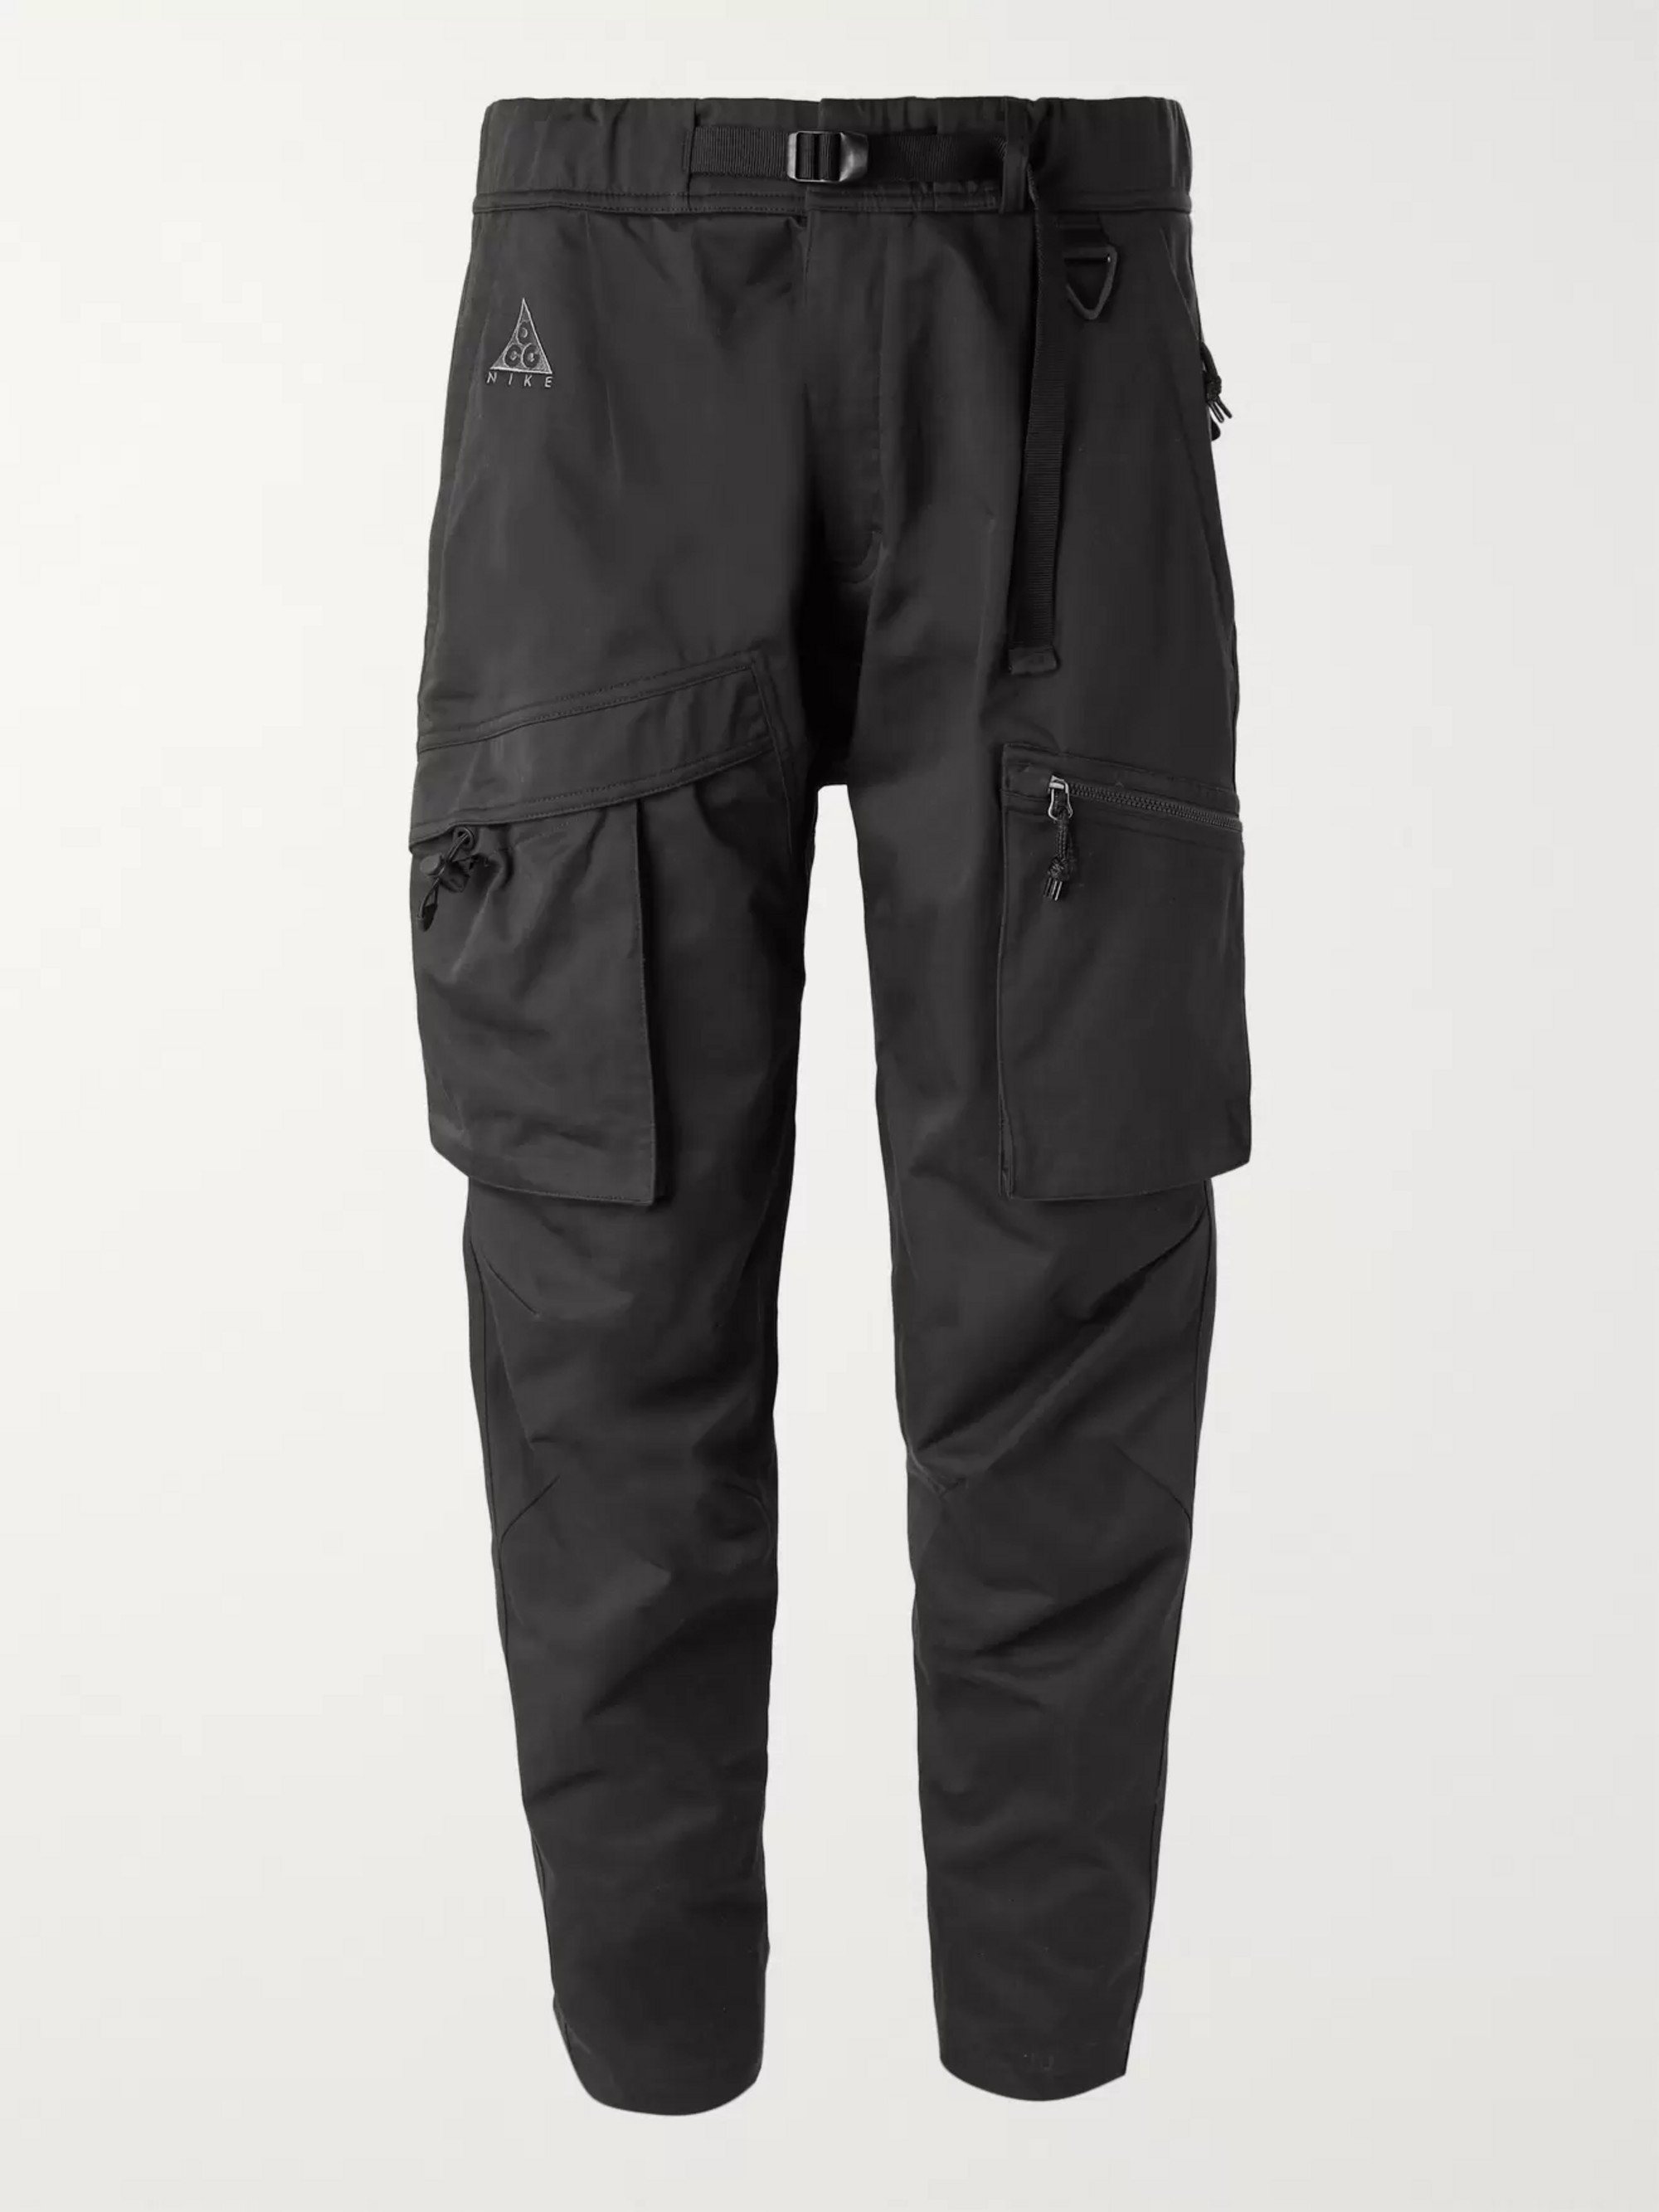 7bb0c5a173e68 Black Black ACG Tapered Cotton-Blend Twill Cargo Trousers | Nike ...